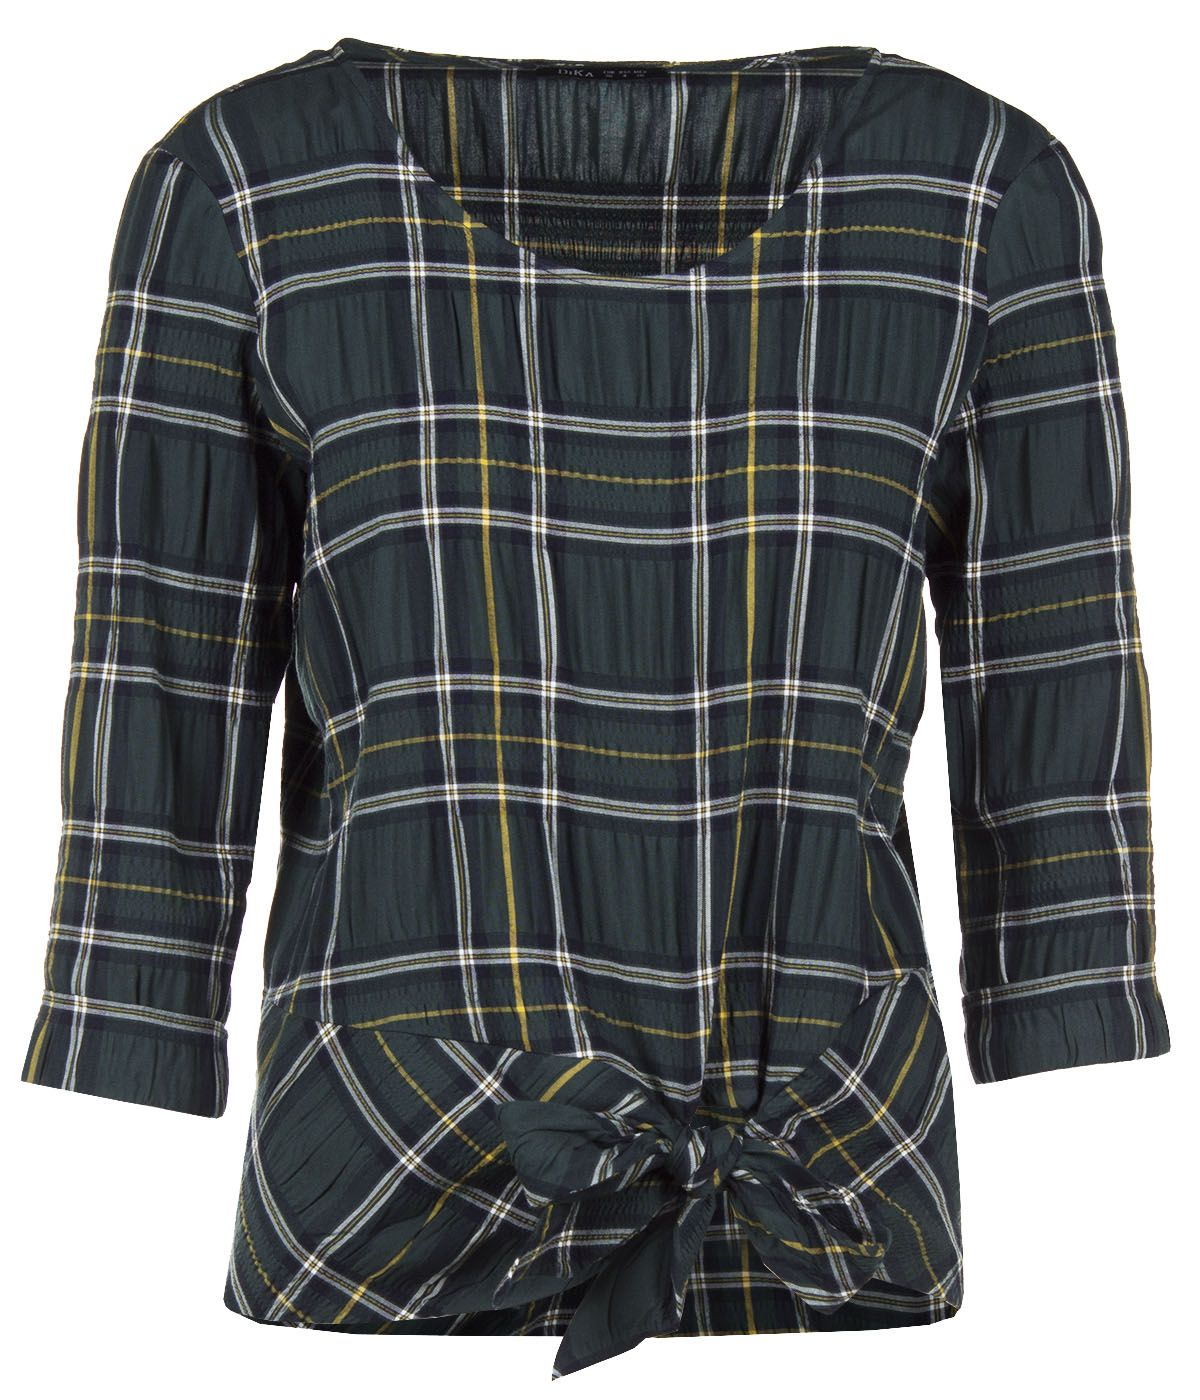 CHECKED BLOUSE FROM VISCOSE WITH ¾ SLEEVES AND TIED DETAIL 0